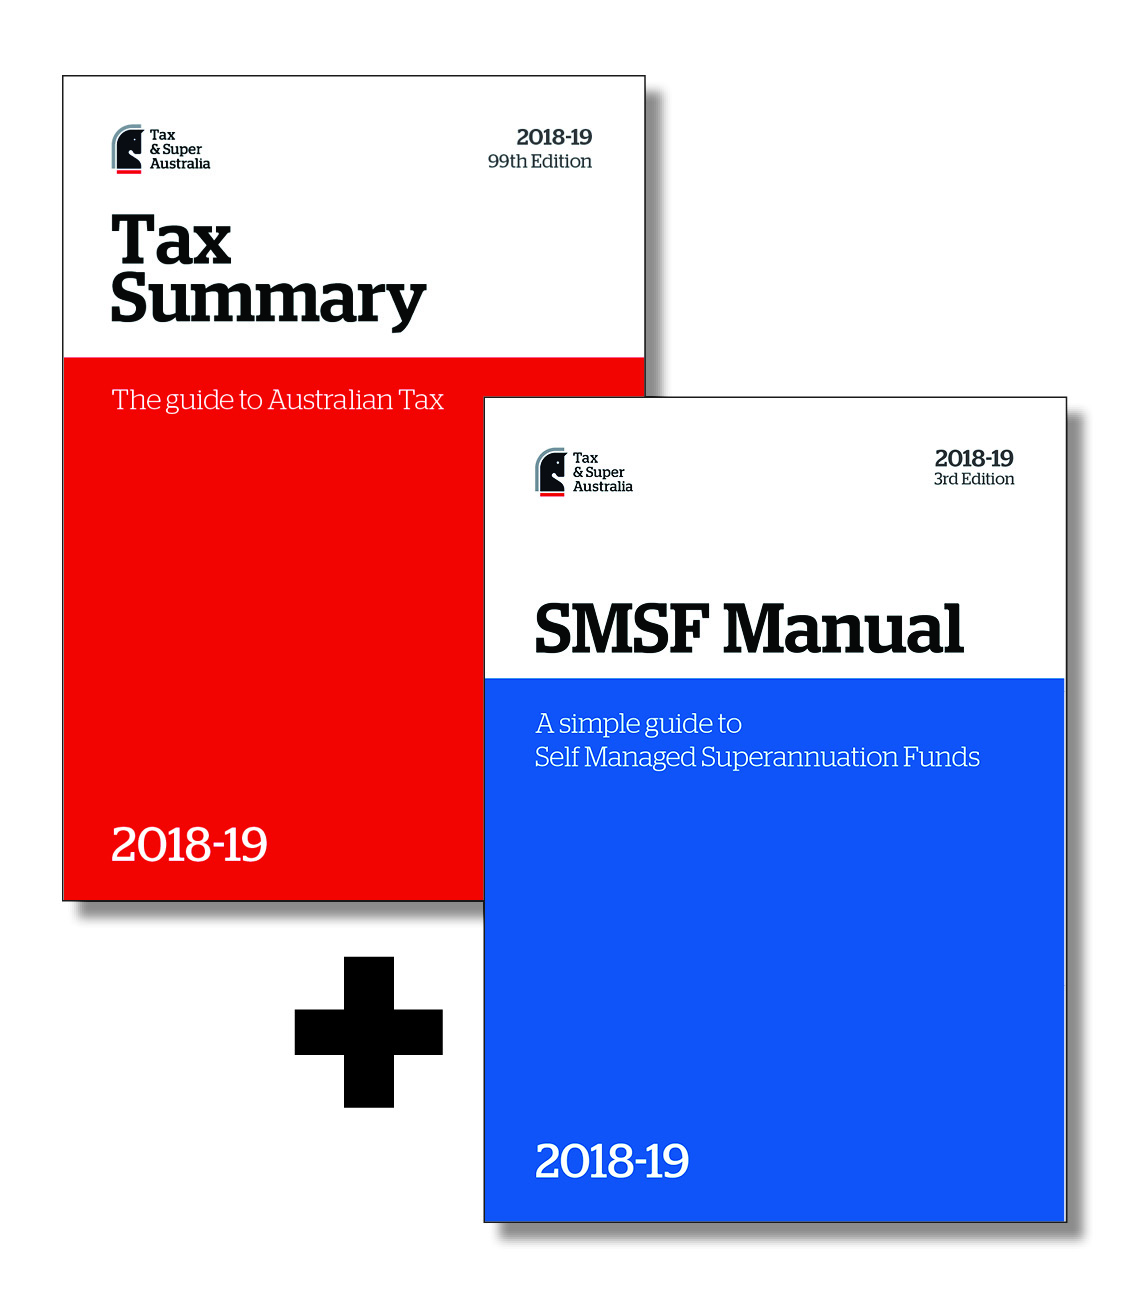 Tax Summary & SMSF Manual